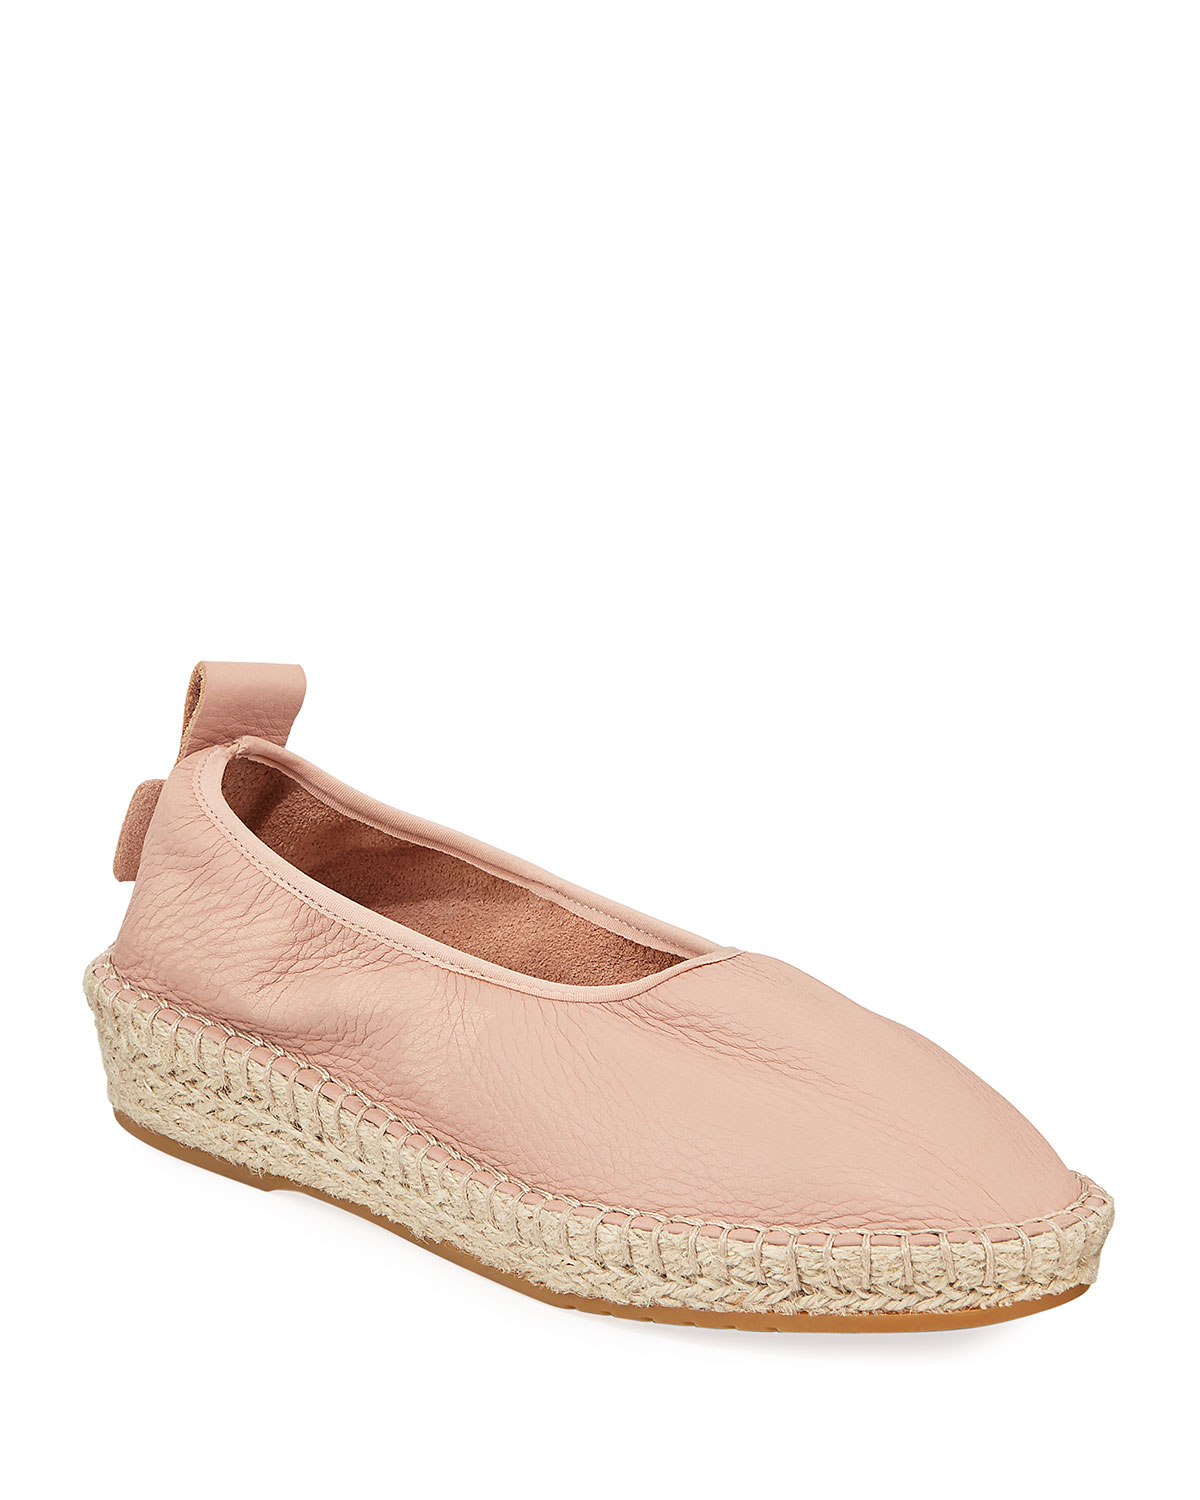 Cloudfeel Leather Espadrille Sneakers